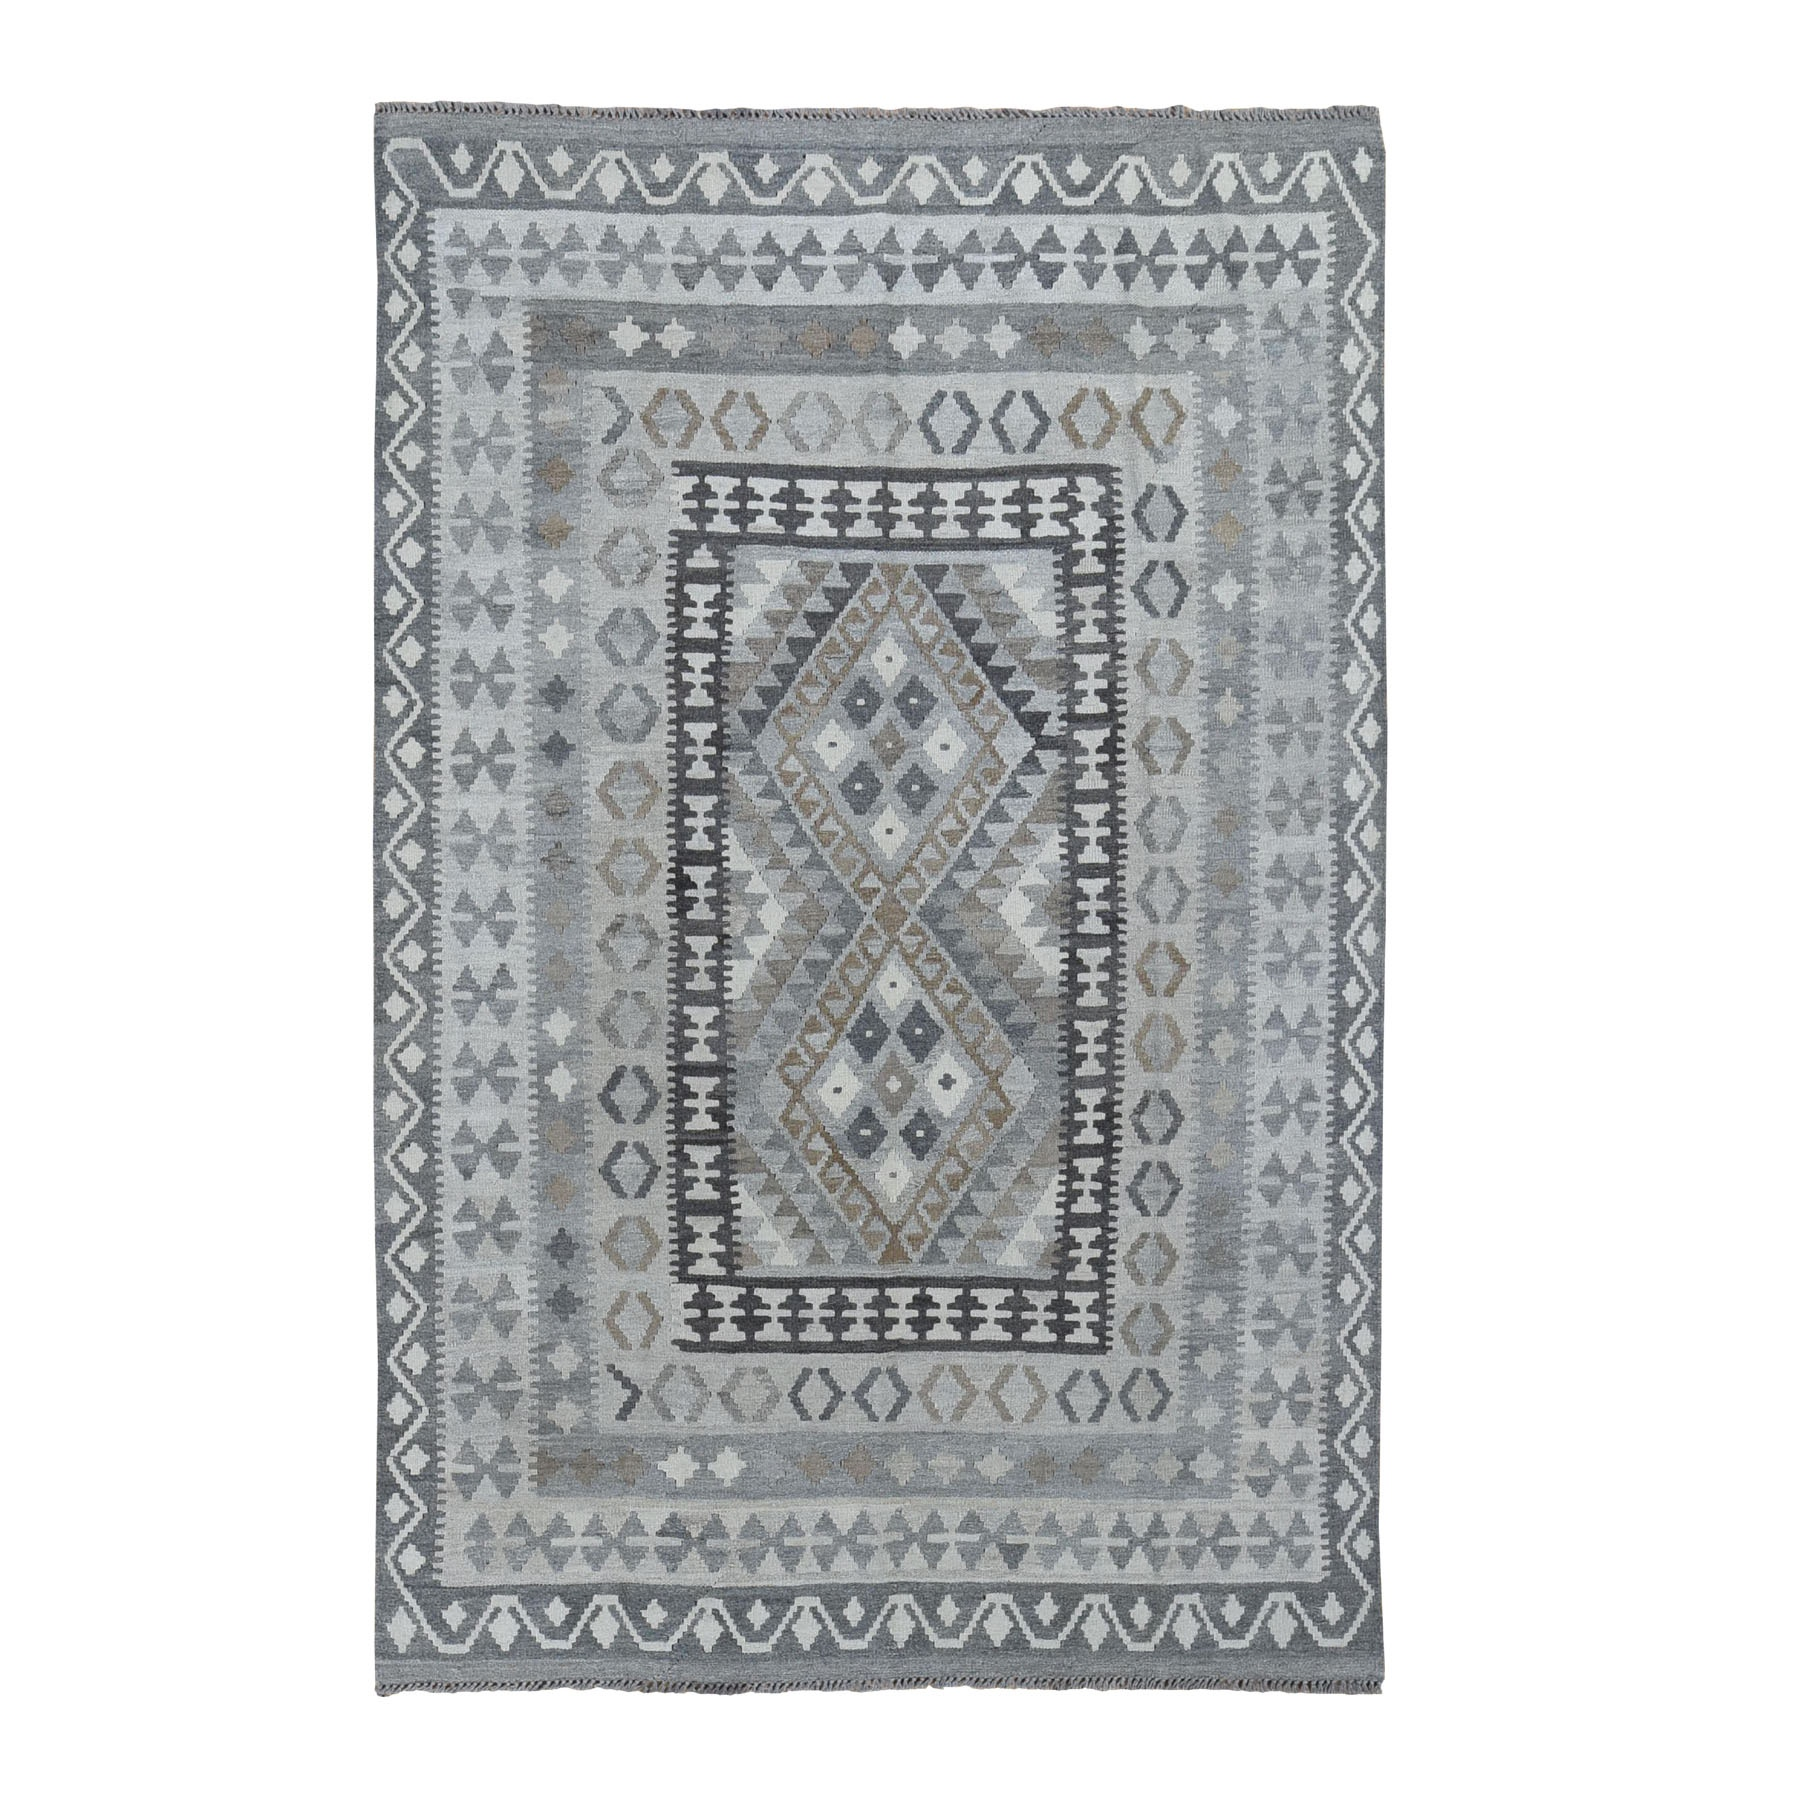 "5'8""X8'1""  Undyed Natural Wool Afghan Kilim Reversible Hand Woven Oriental Rug moad8097"